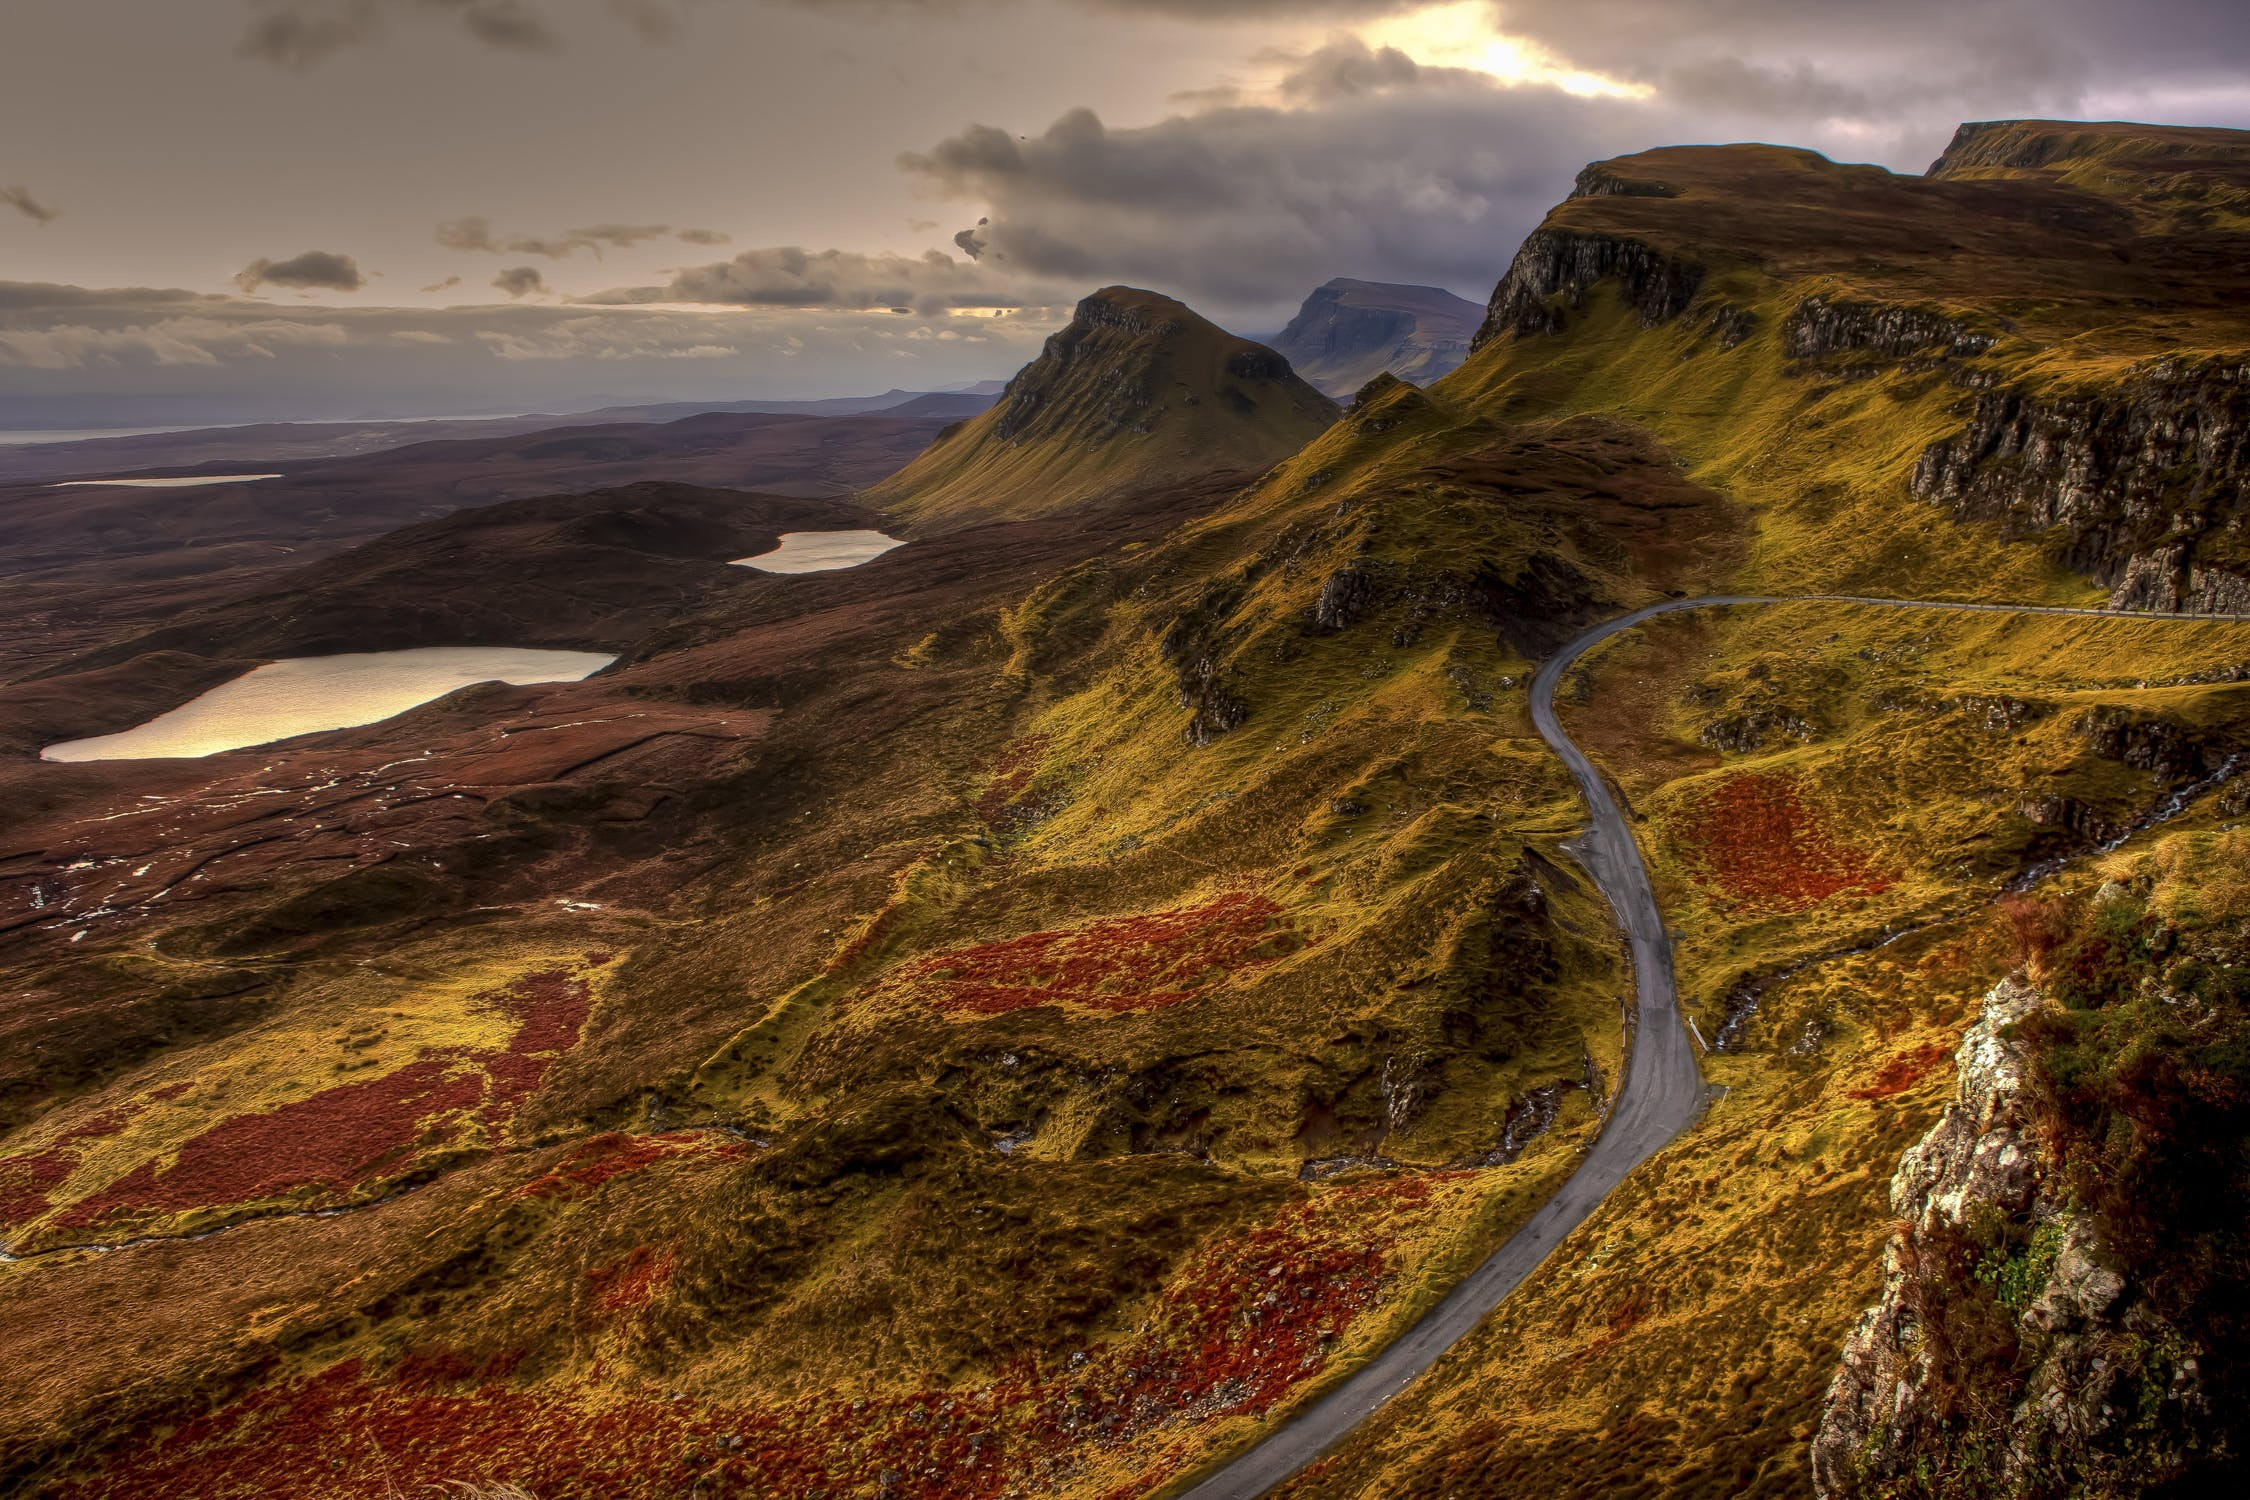 A road winding through a picturesque Scottish landscape. One way to enjoy a Scottish Staycation.